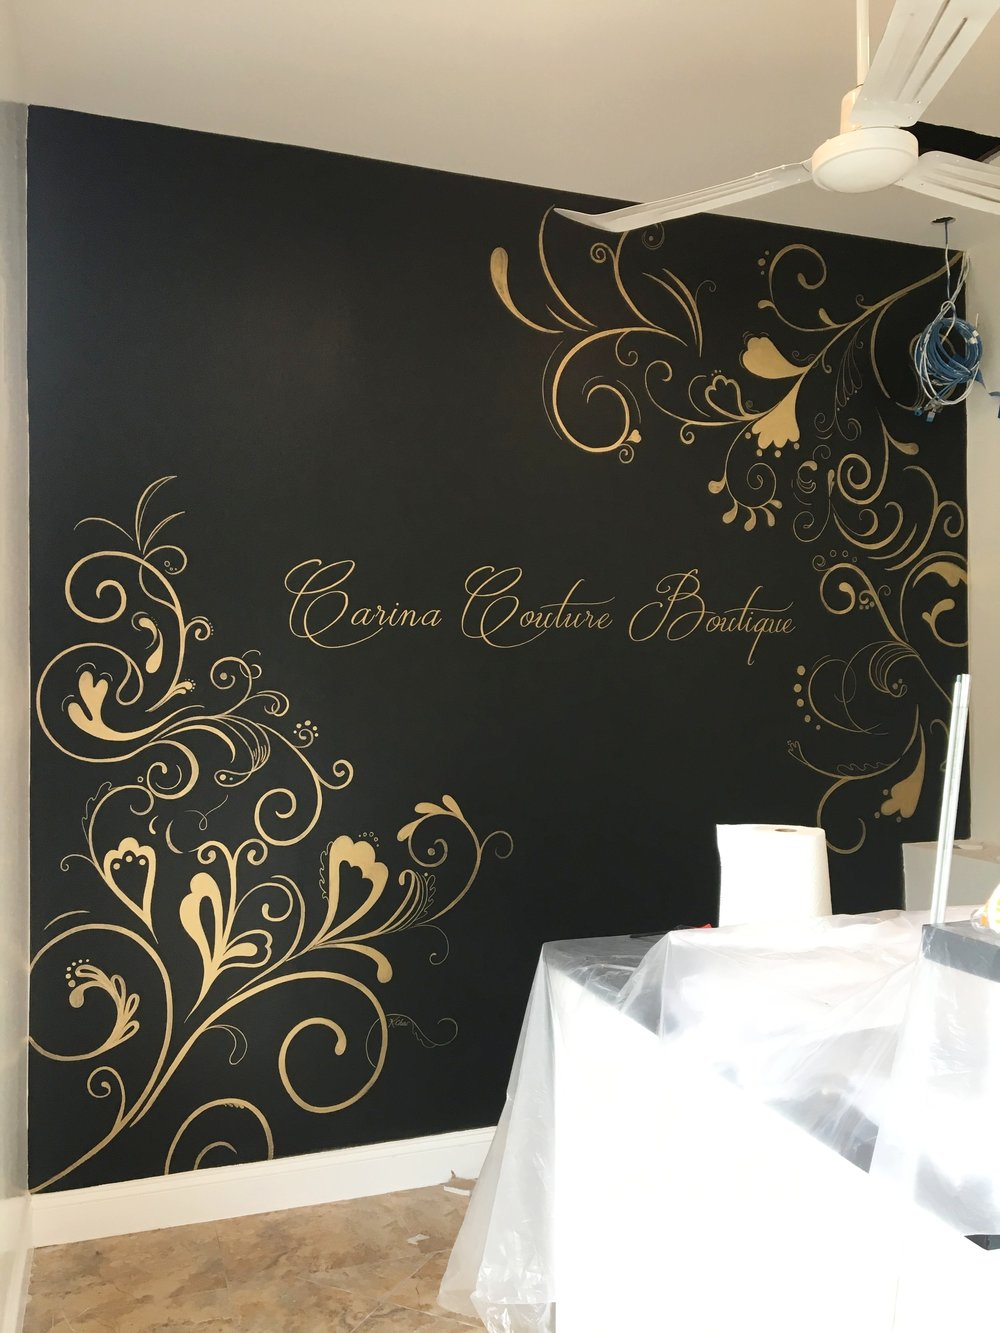 Hand painted flourishes & logo